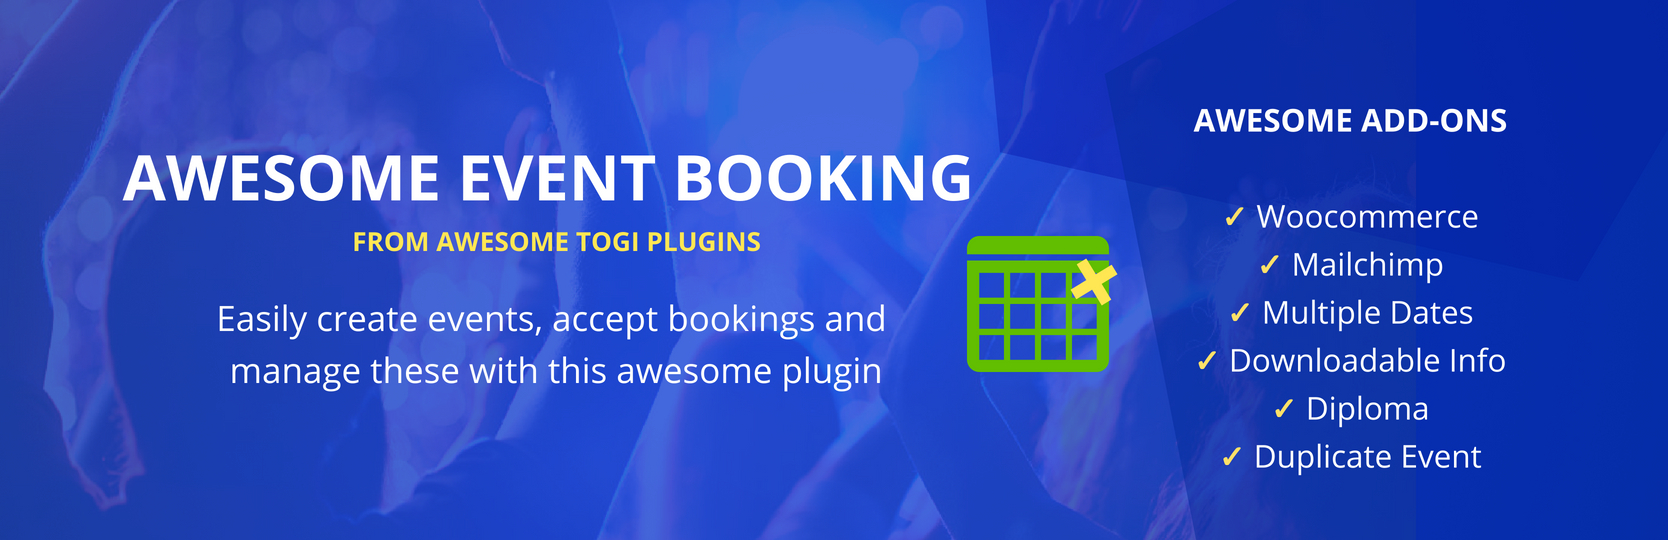 WordPress Awesome Event Booking Plugin Banner Image